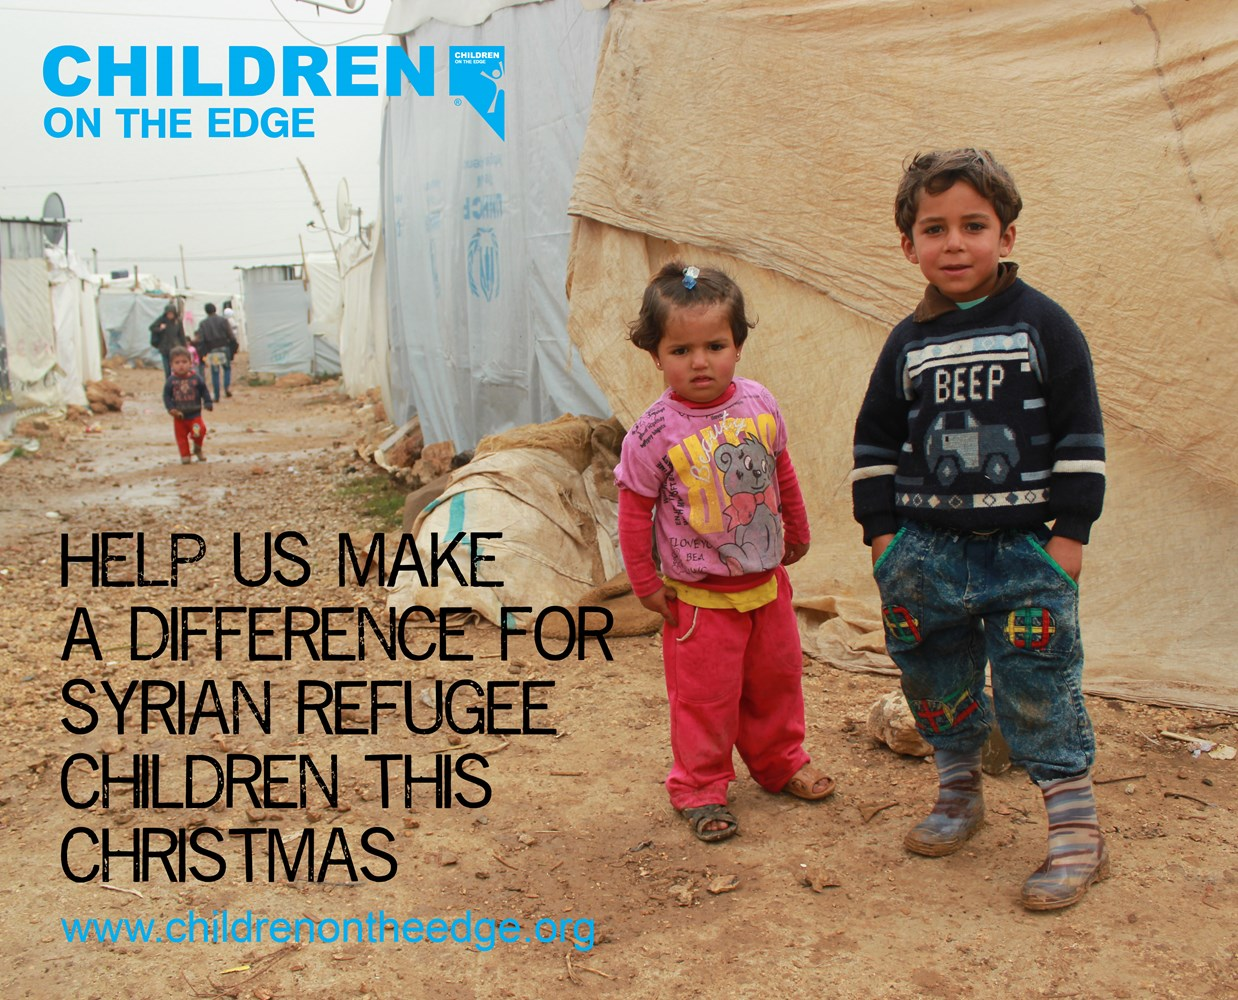 syria refugee appeal - all wrapped up for christmas - justgiving